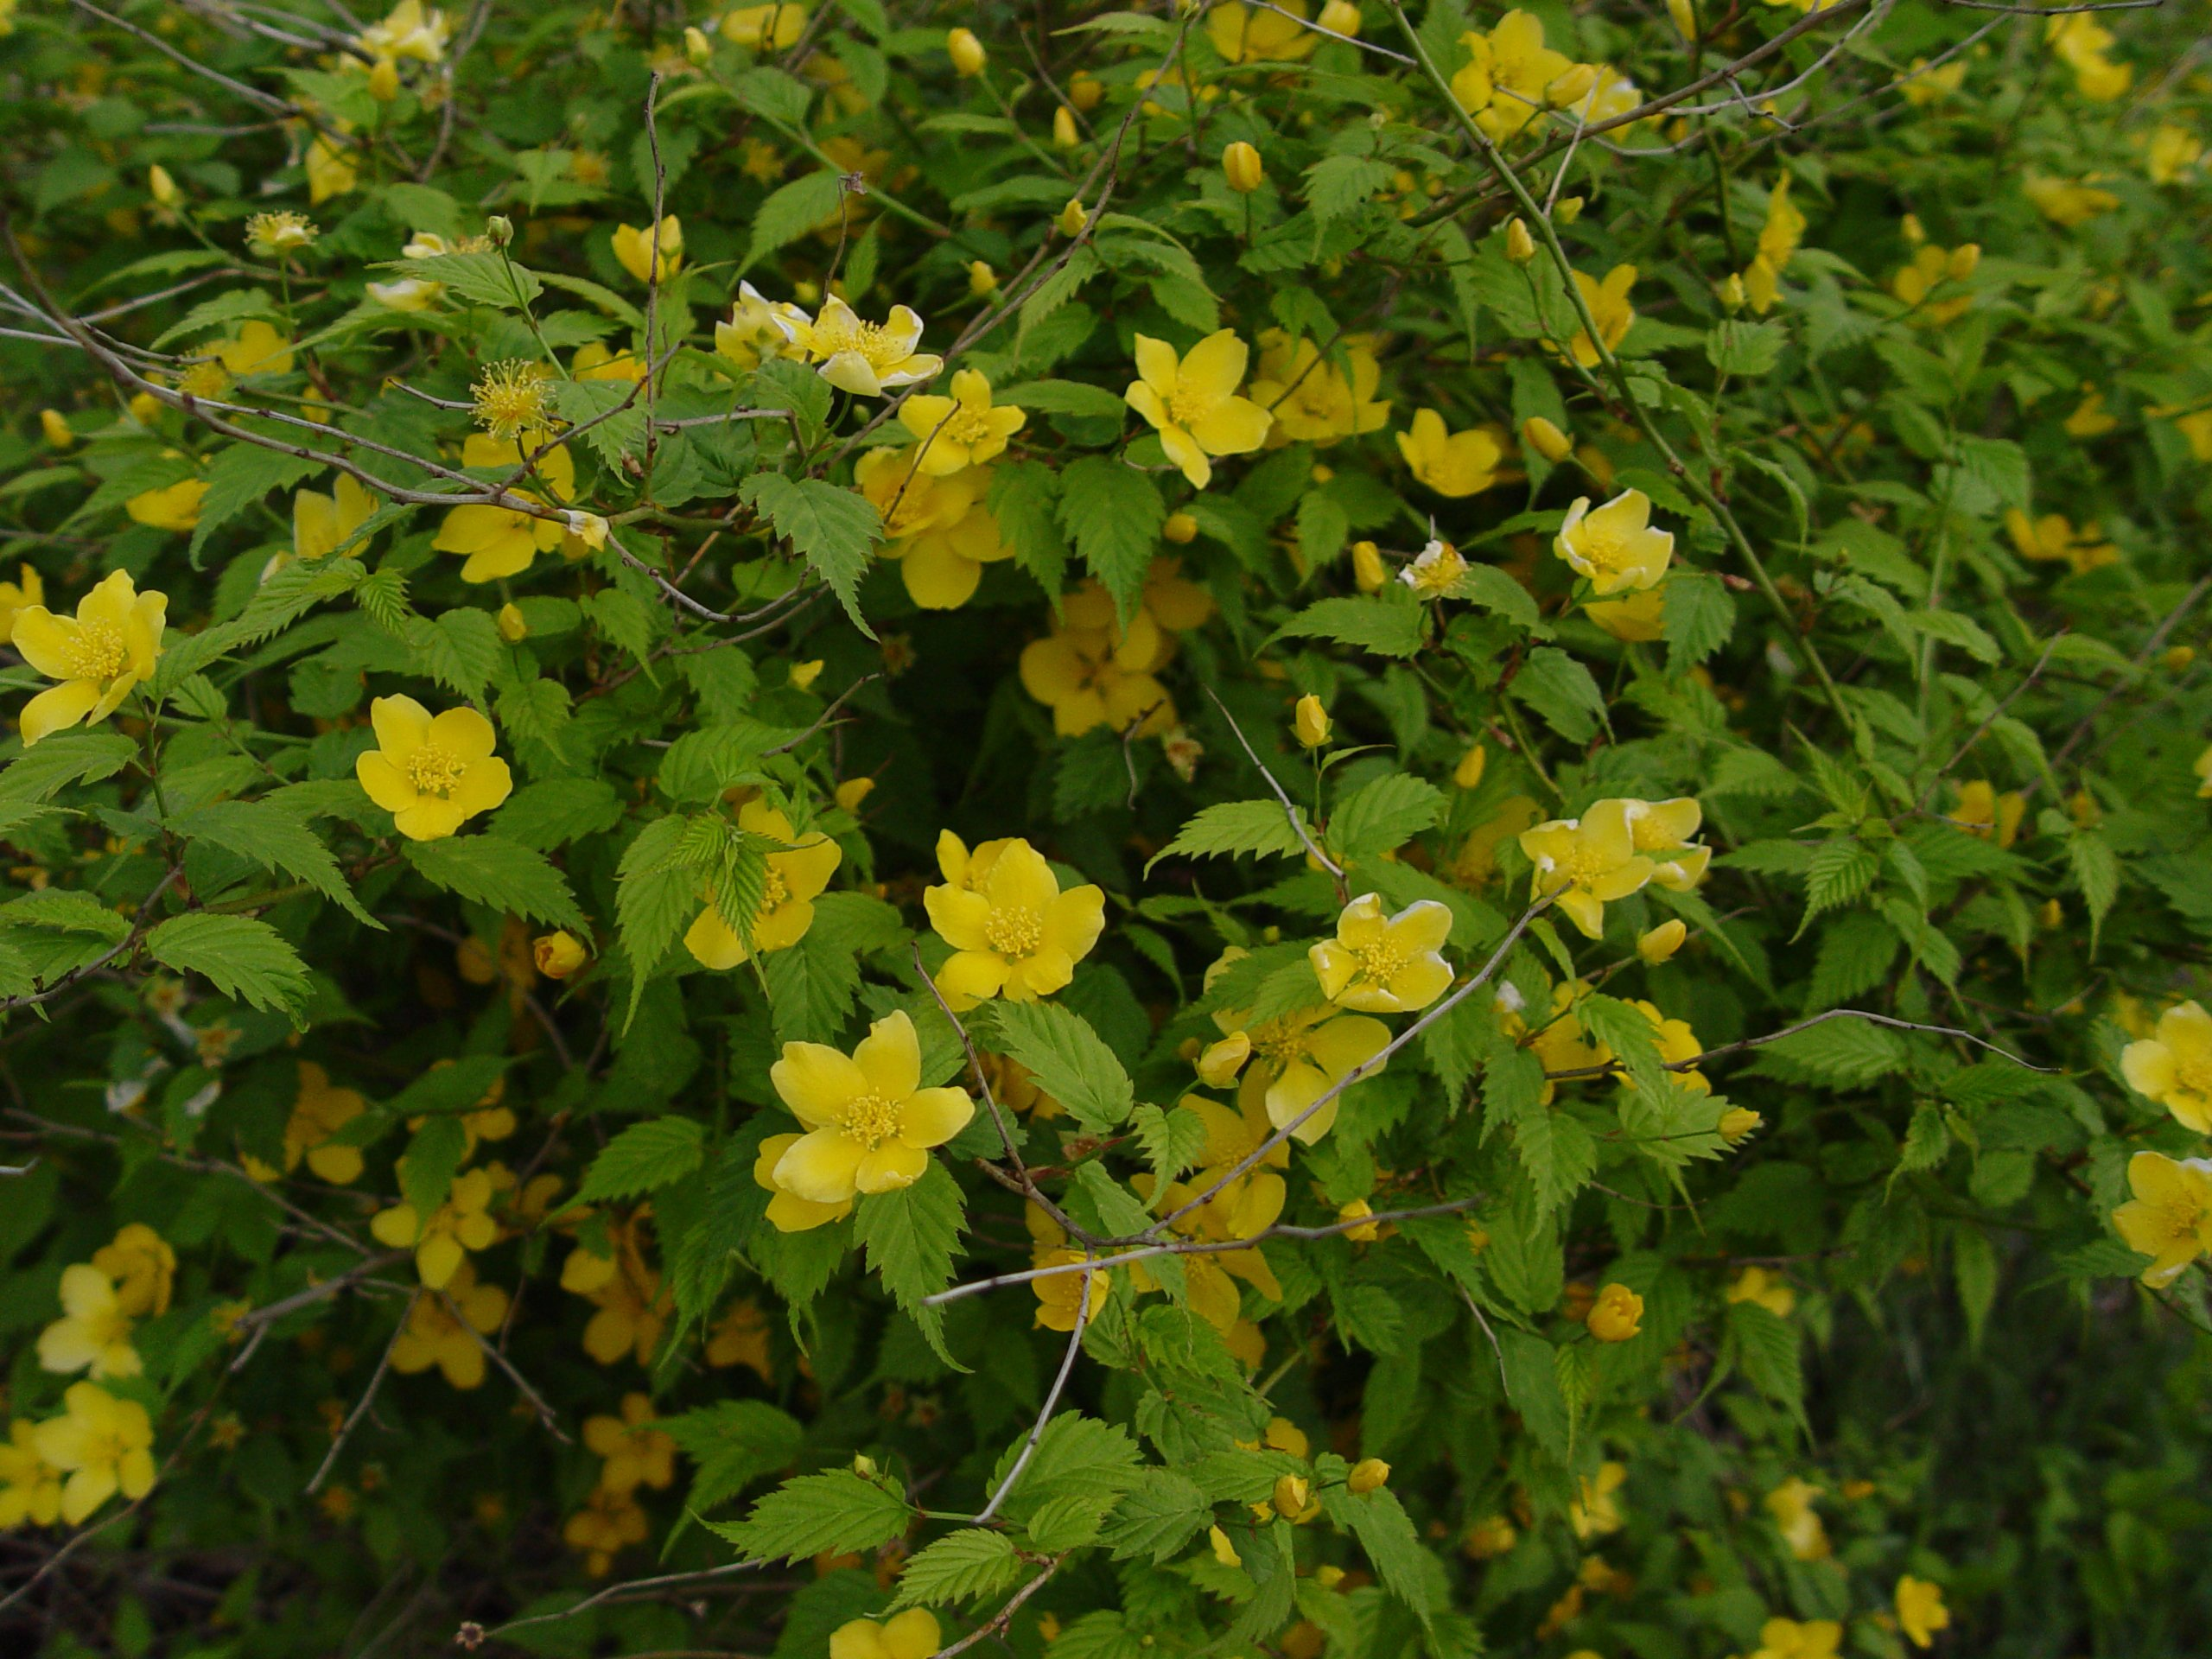 Kerria japonica 'Golden Guinea' (Japanese Kerria) Shrub, yellow flowers, #2 - Size Container by Green Promise Farms (Image #5)